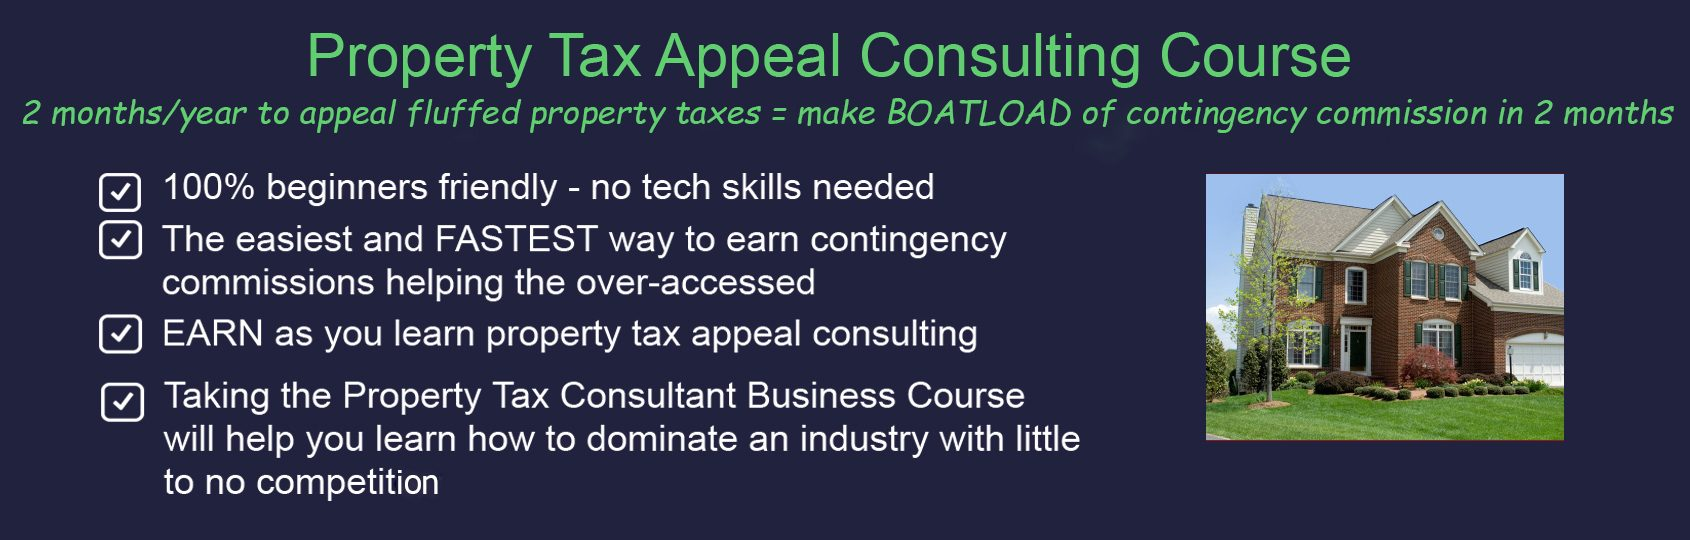 Property Tax Appeal Consulting review